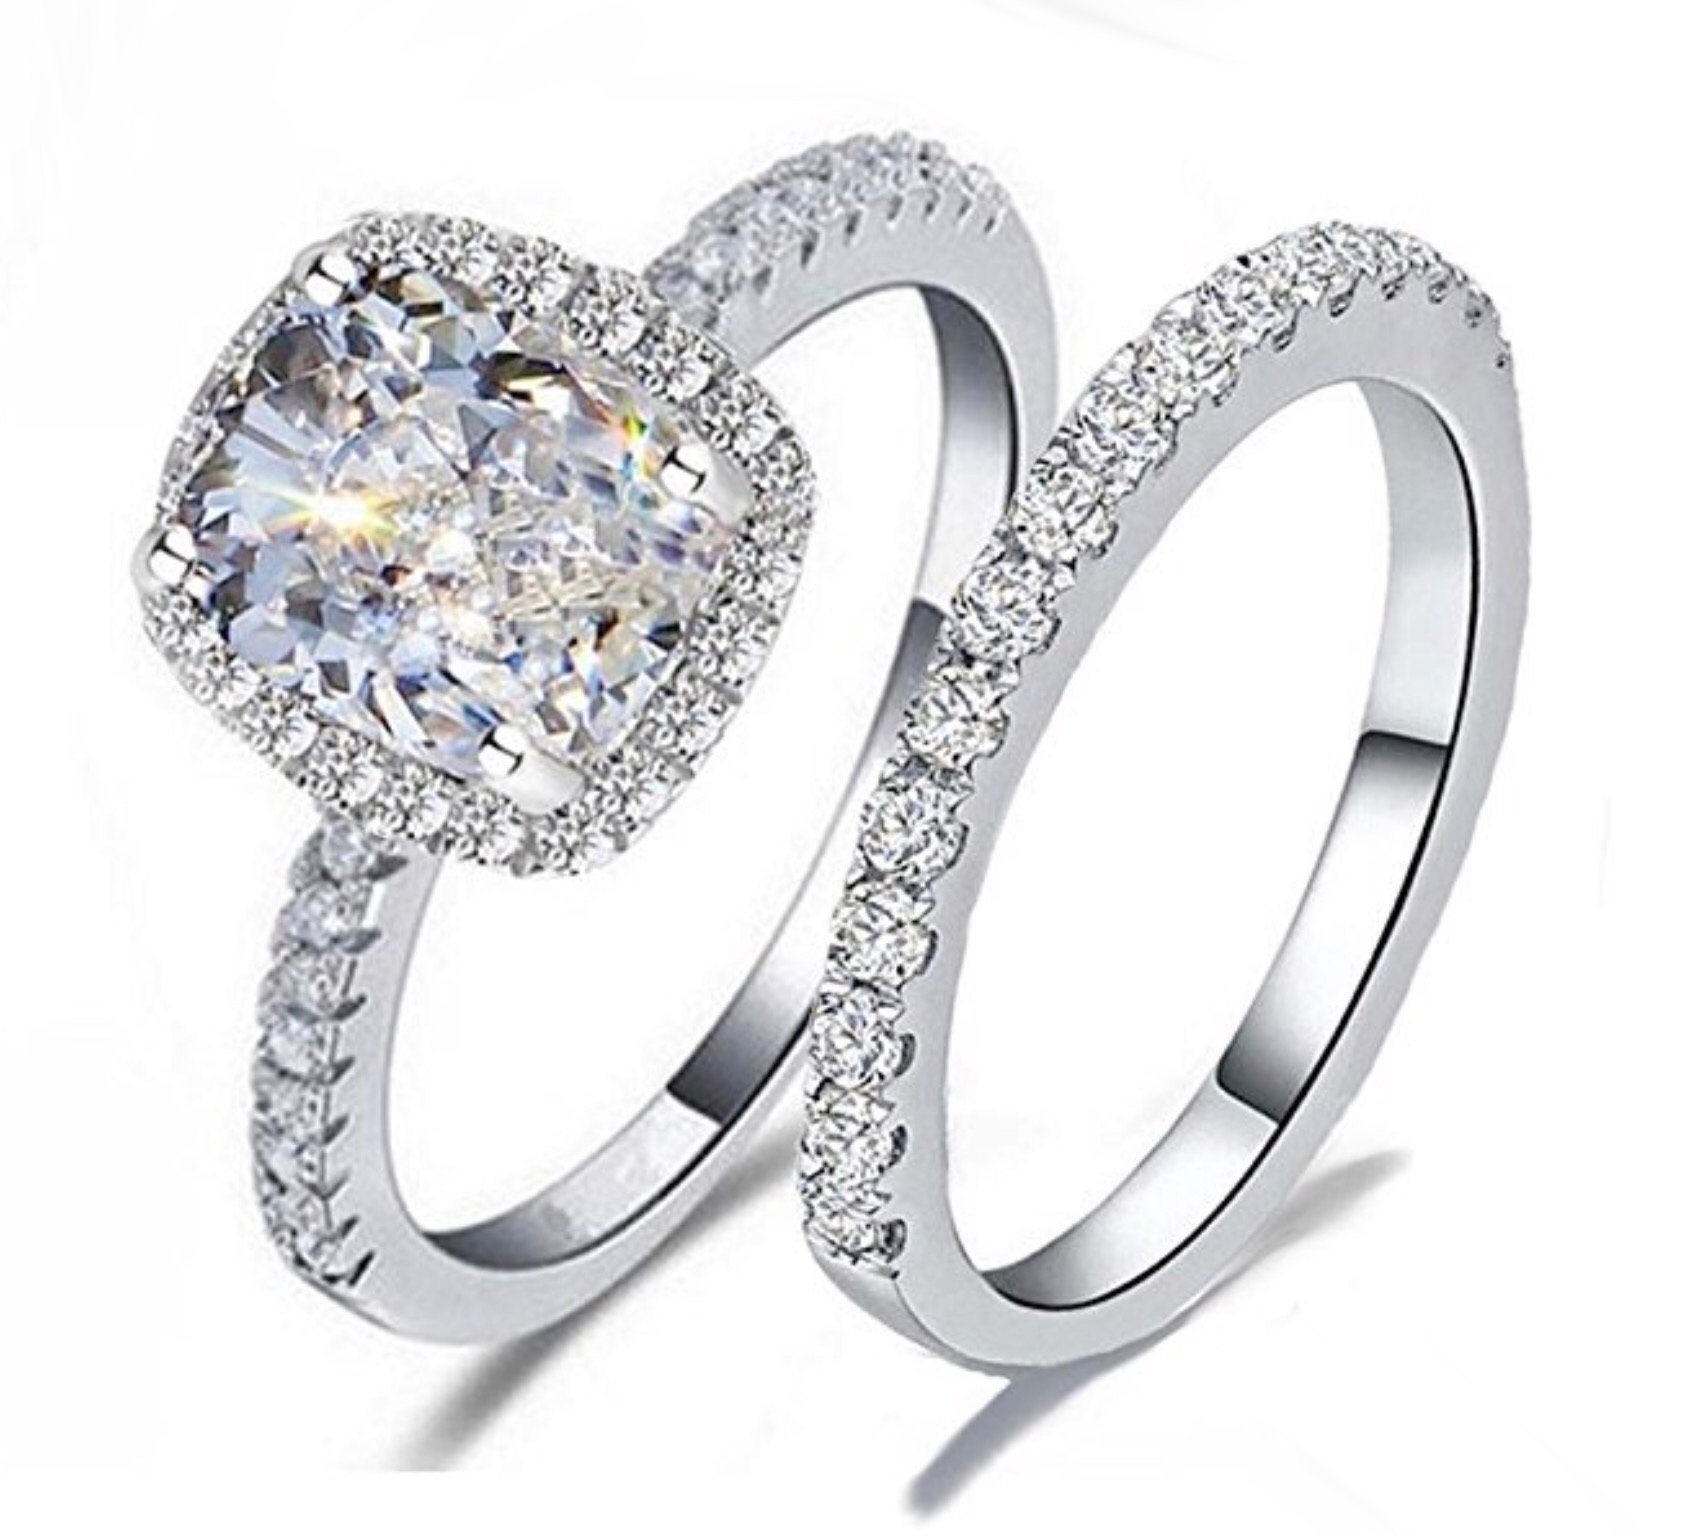 TOP GRADE 2 CARAT RADIANT EMERALD CUSHION CUT SONA NSCD SIMULATED DIAMOND RING BAND SET SOLID 925 SILVER (8)